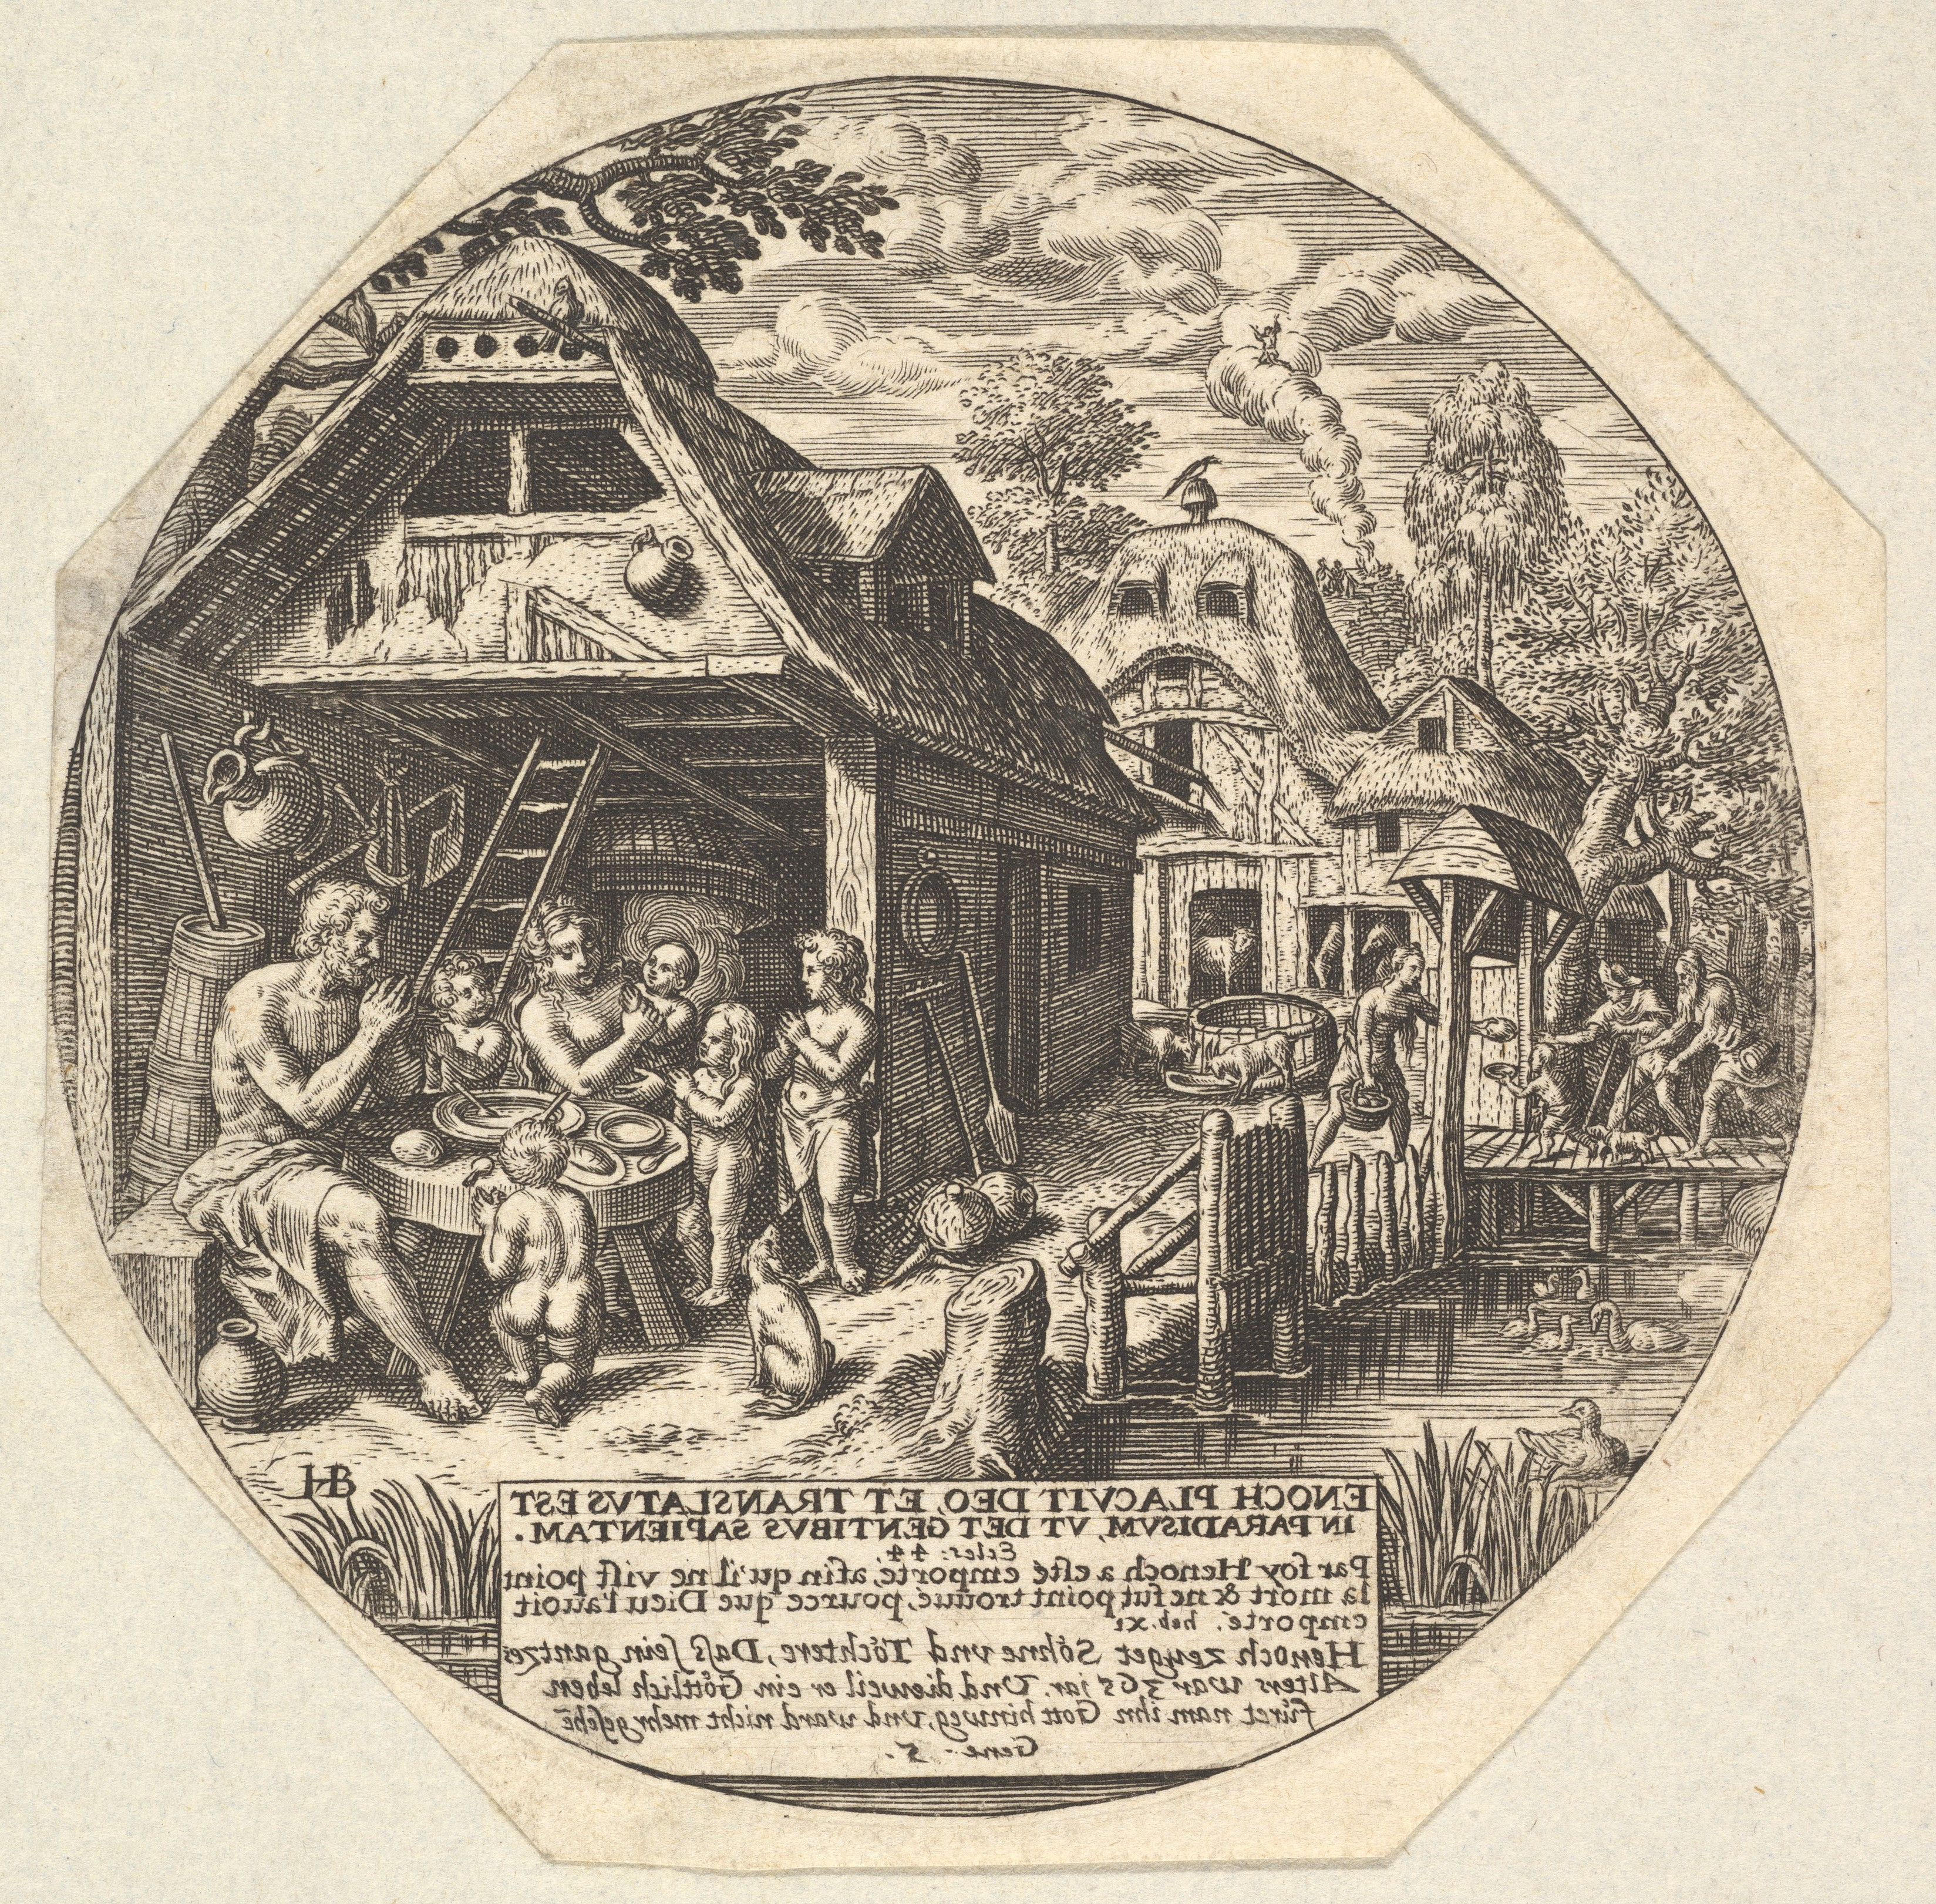 Fileenoch And His Family Surrounding A Meal Table And Holding Their